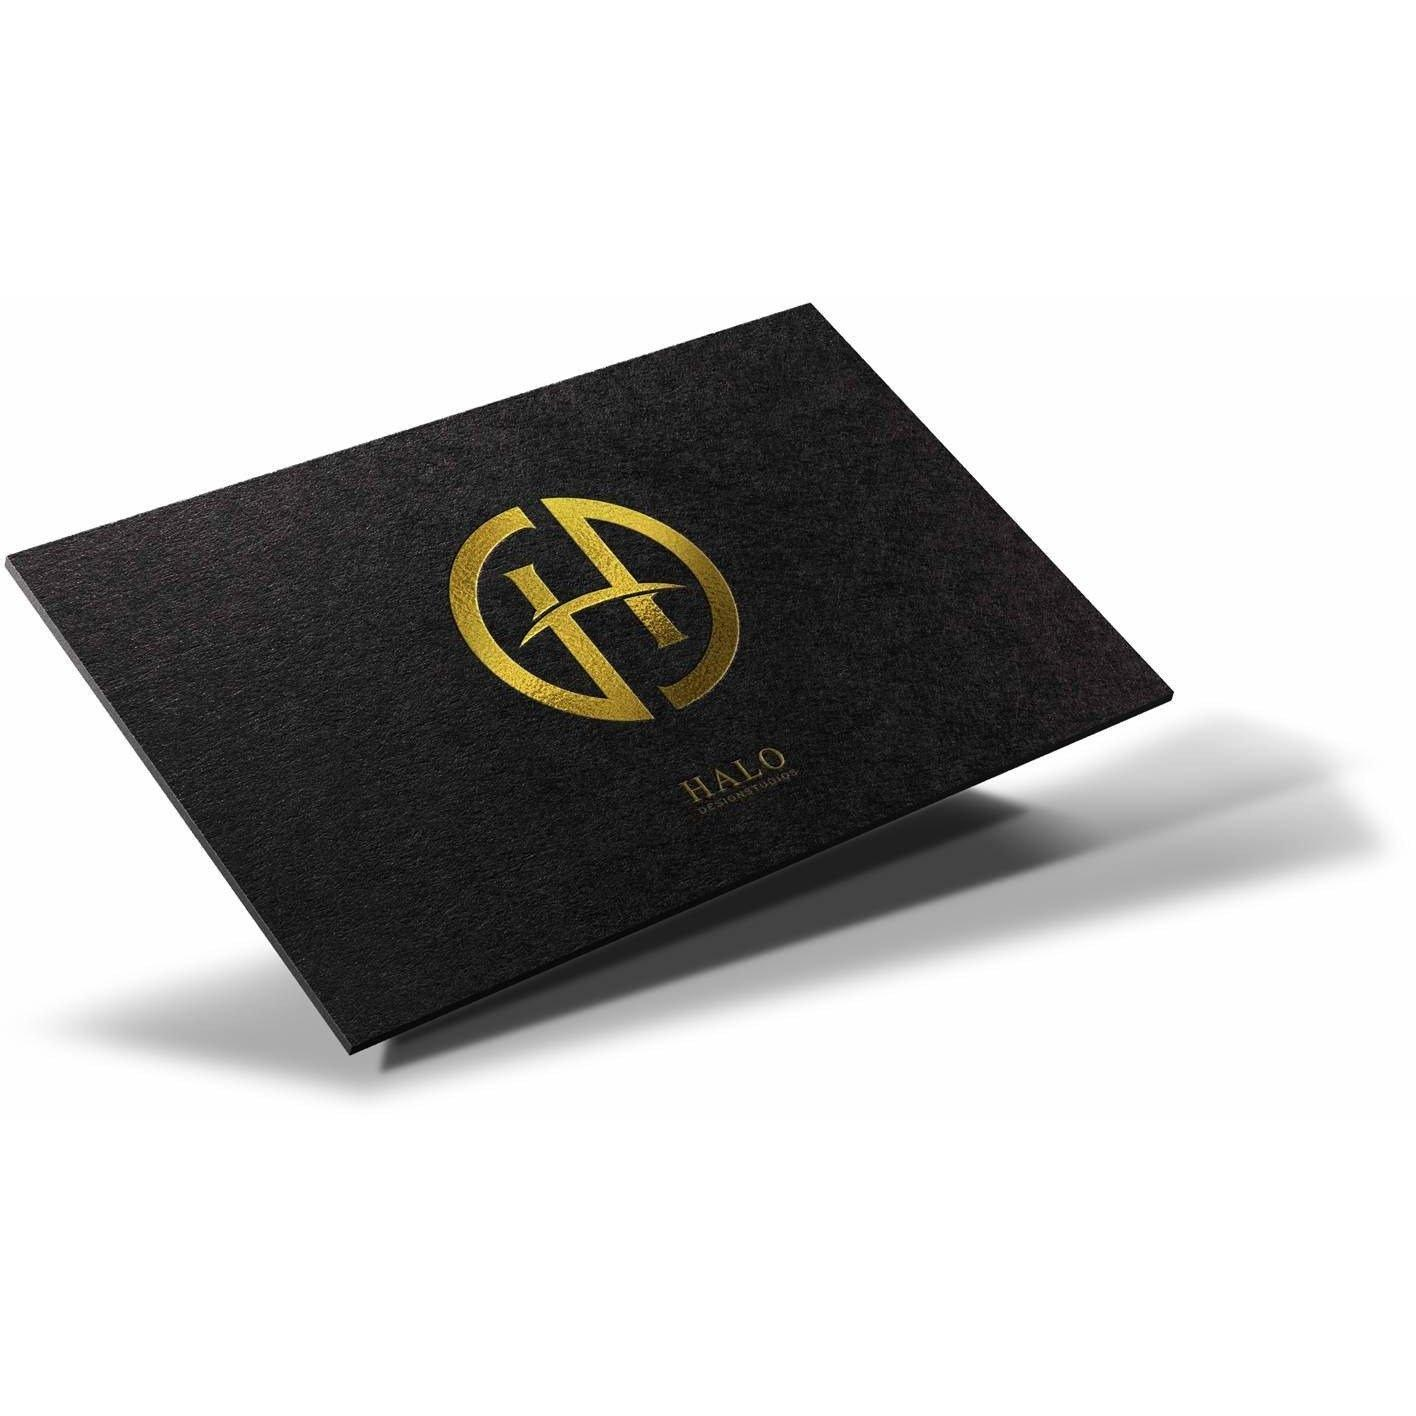 Foil Stamped Business Cards | Maxtor Graphics - Online Printing Shop ...